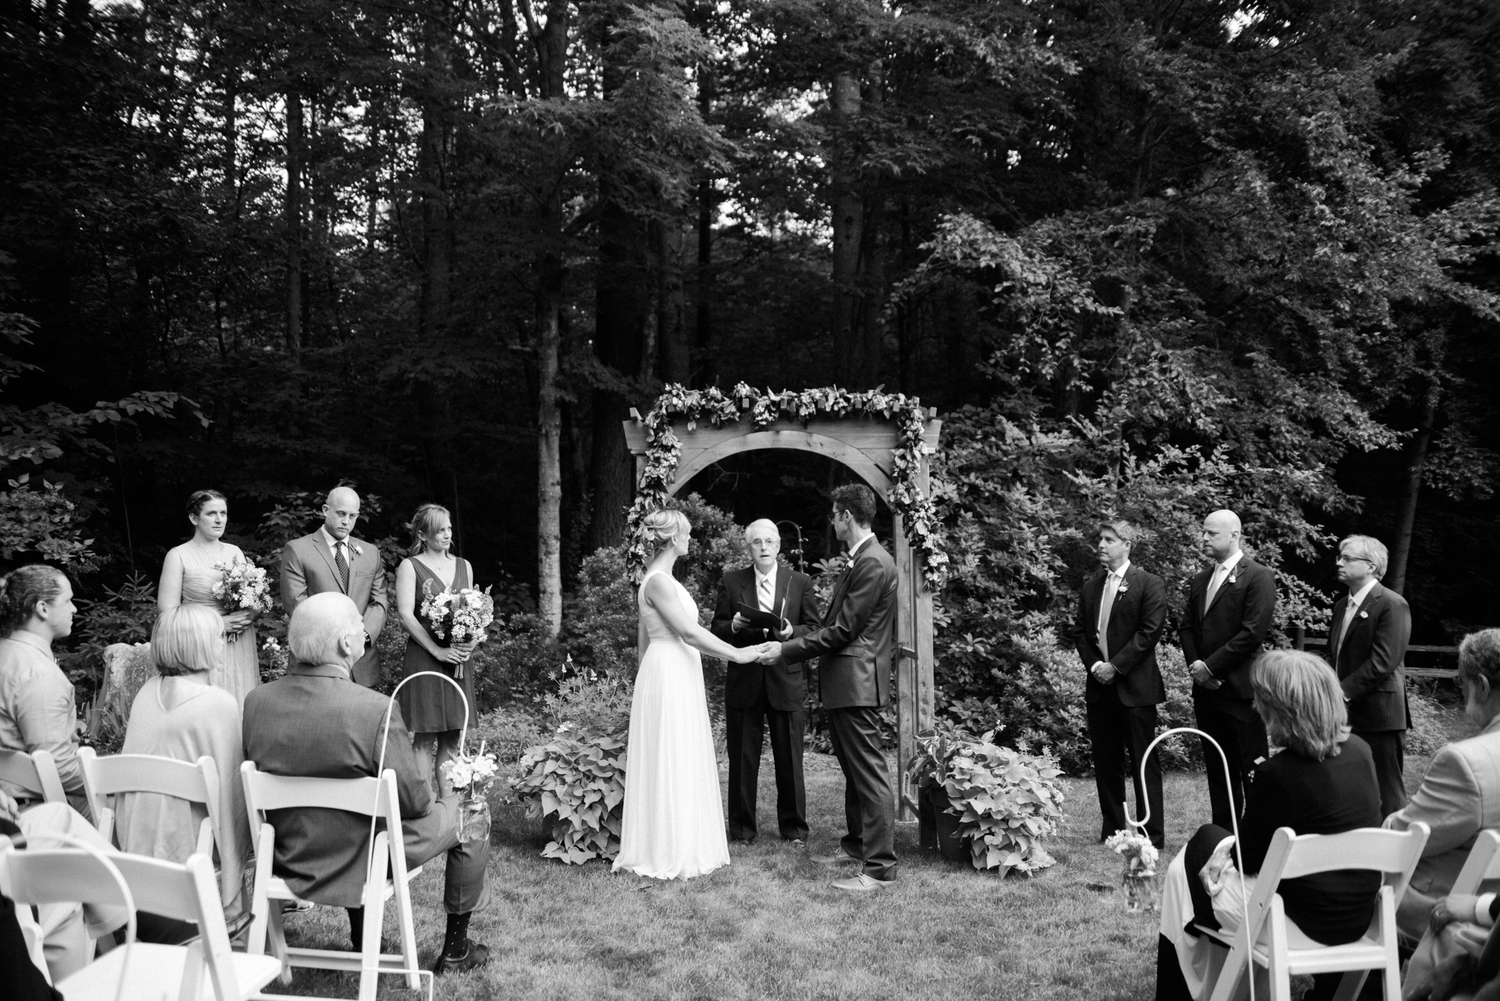 emily u0026 dan u0027s backyard wedding new england wedding photographer